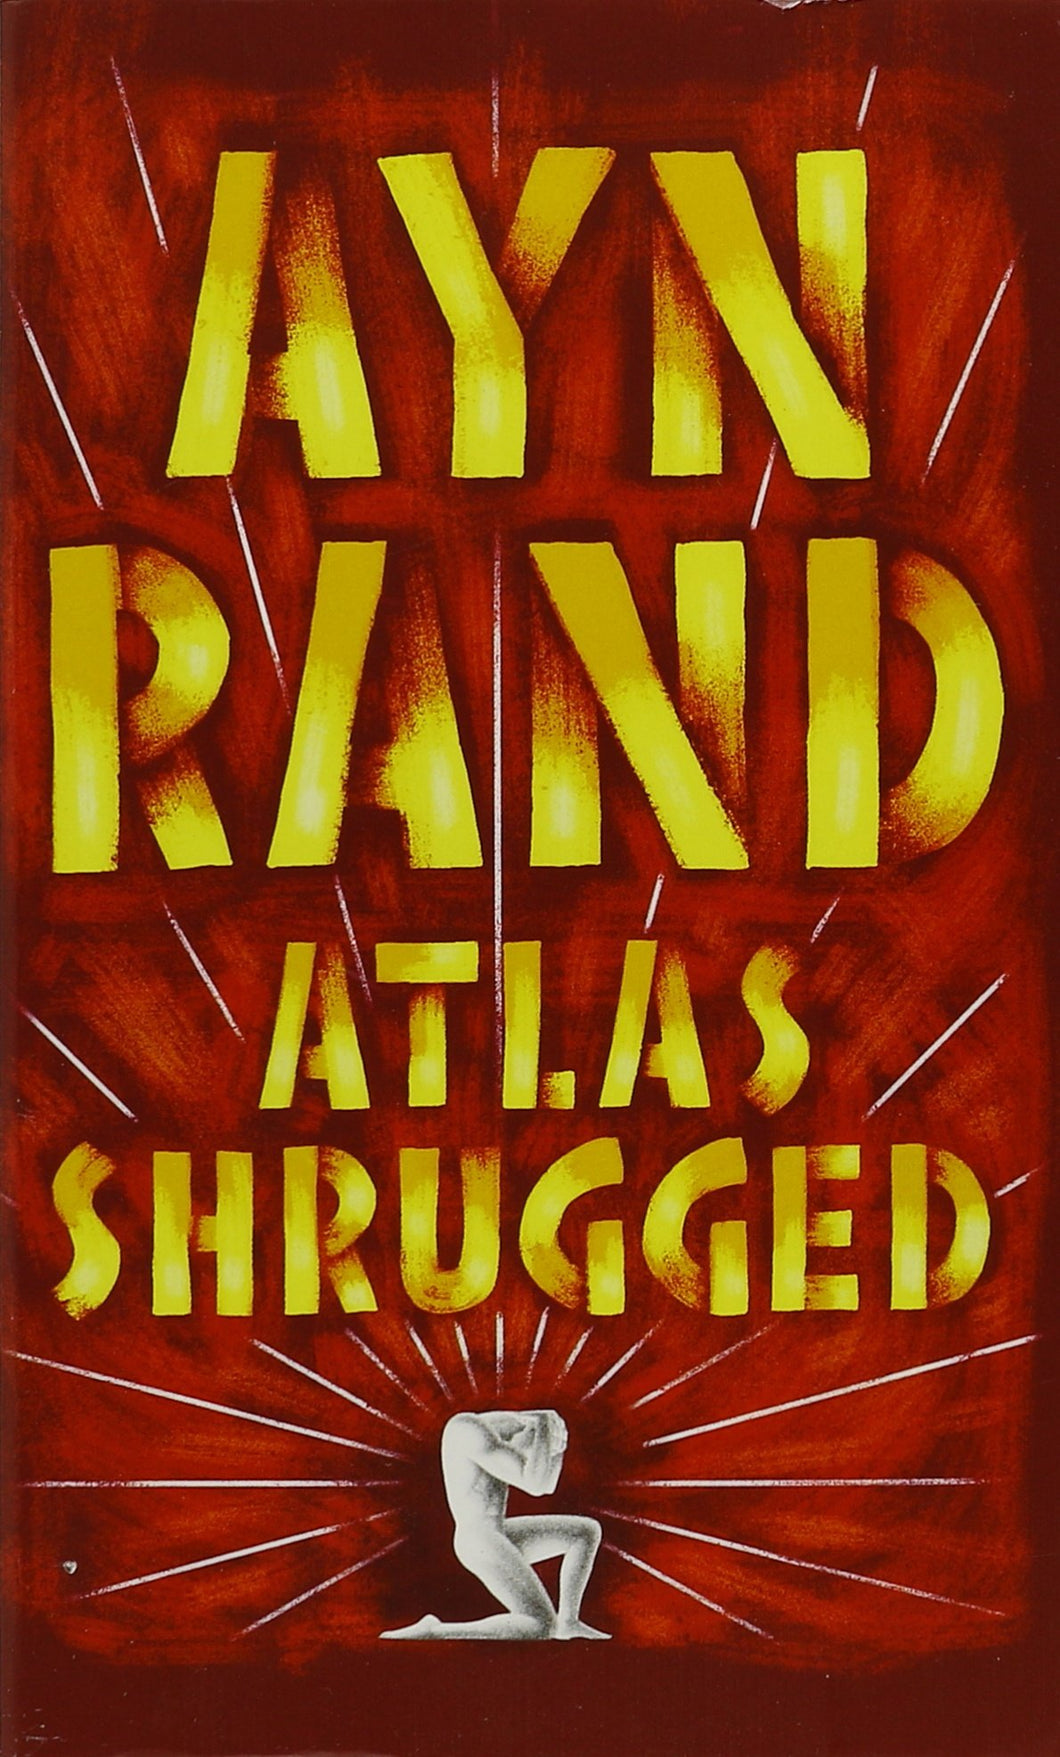 Atlas Shrugged: by Ayn Rand (Batch Master link)- eBook, ePUB, Mobi, PDF (Fast instant delivery)